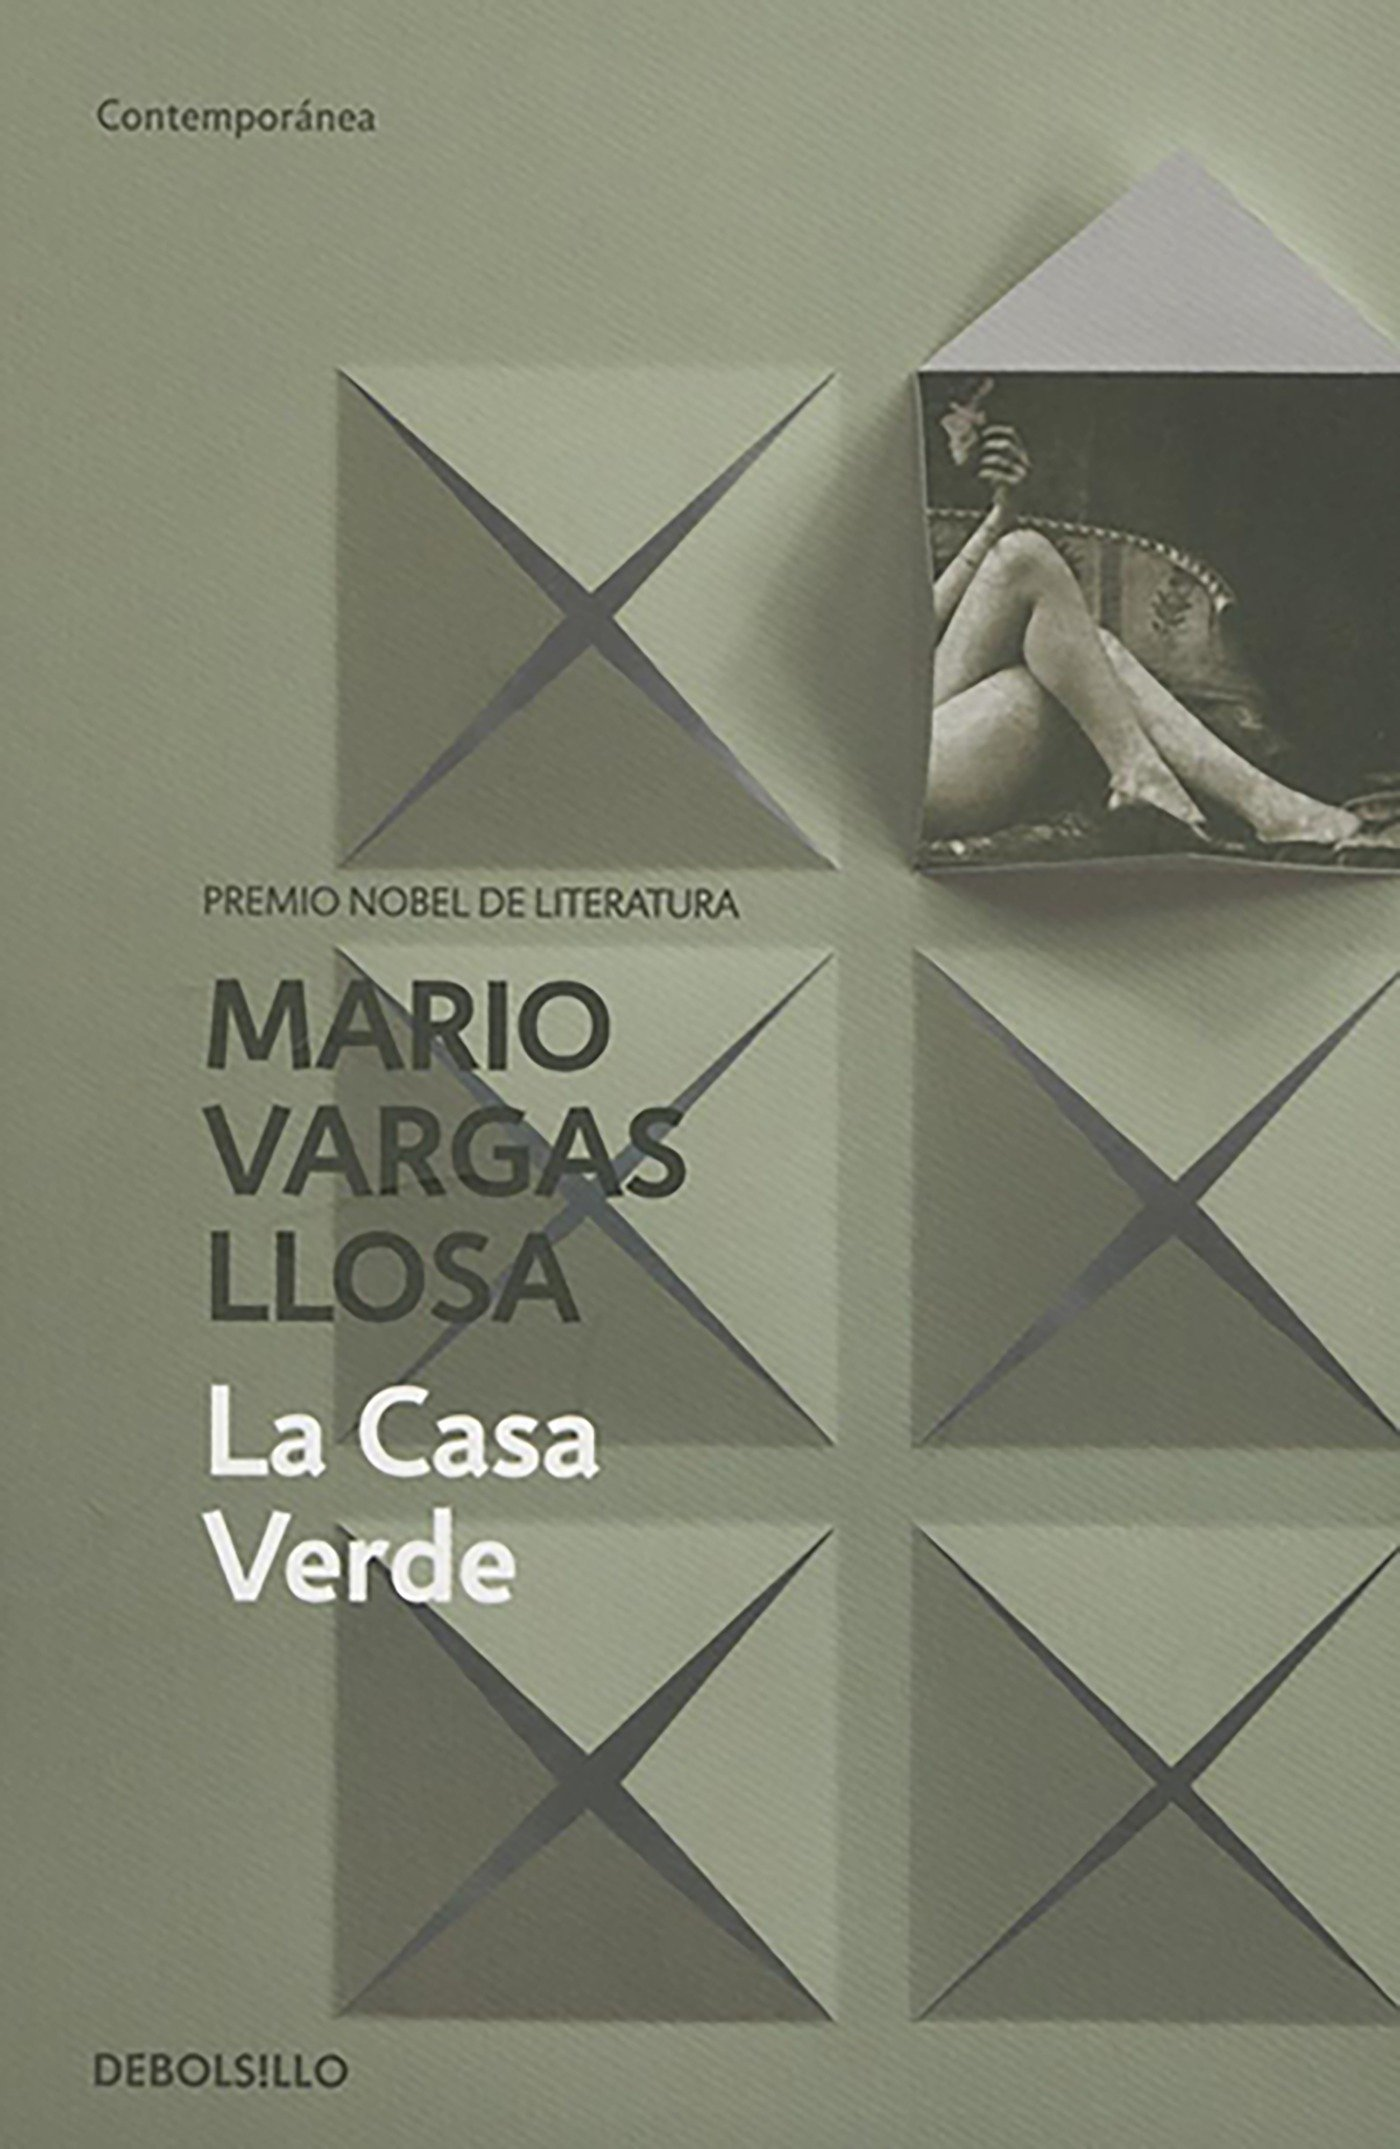 La casa verde / The Green House (Spanish Edition): Mario Vargas Llosa: 9788490625897: Amazon.com: Books